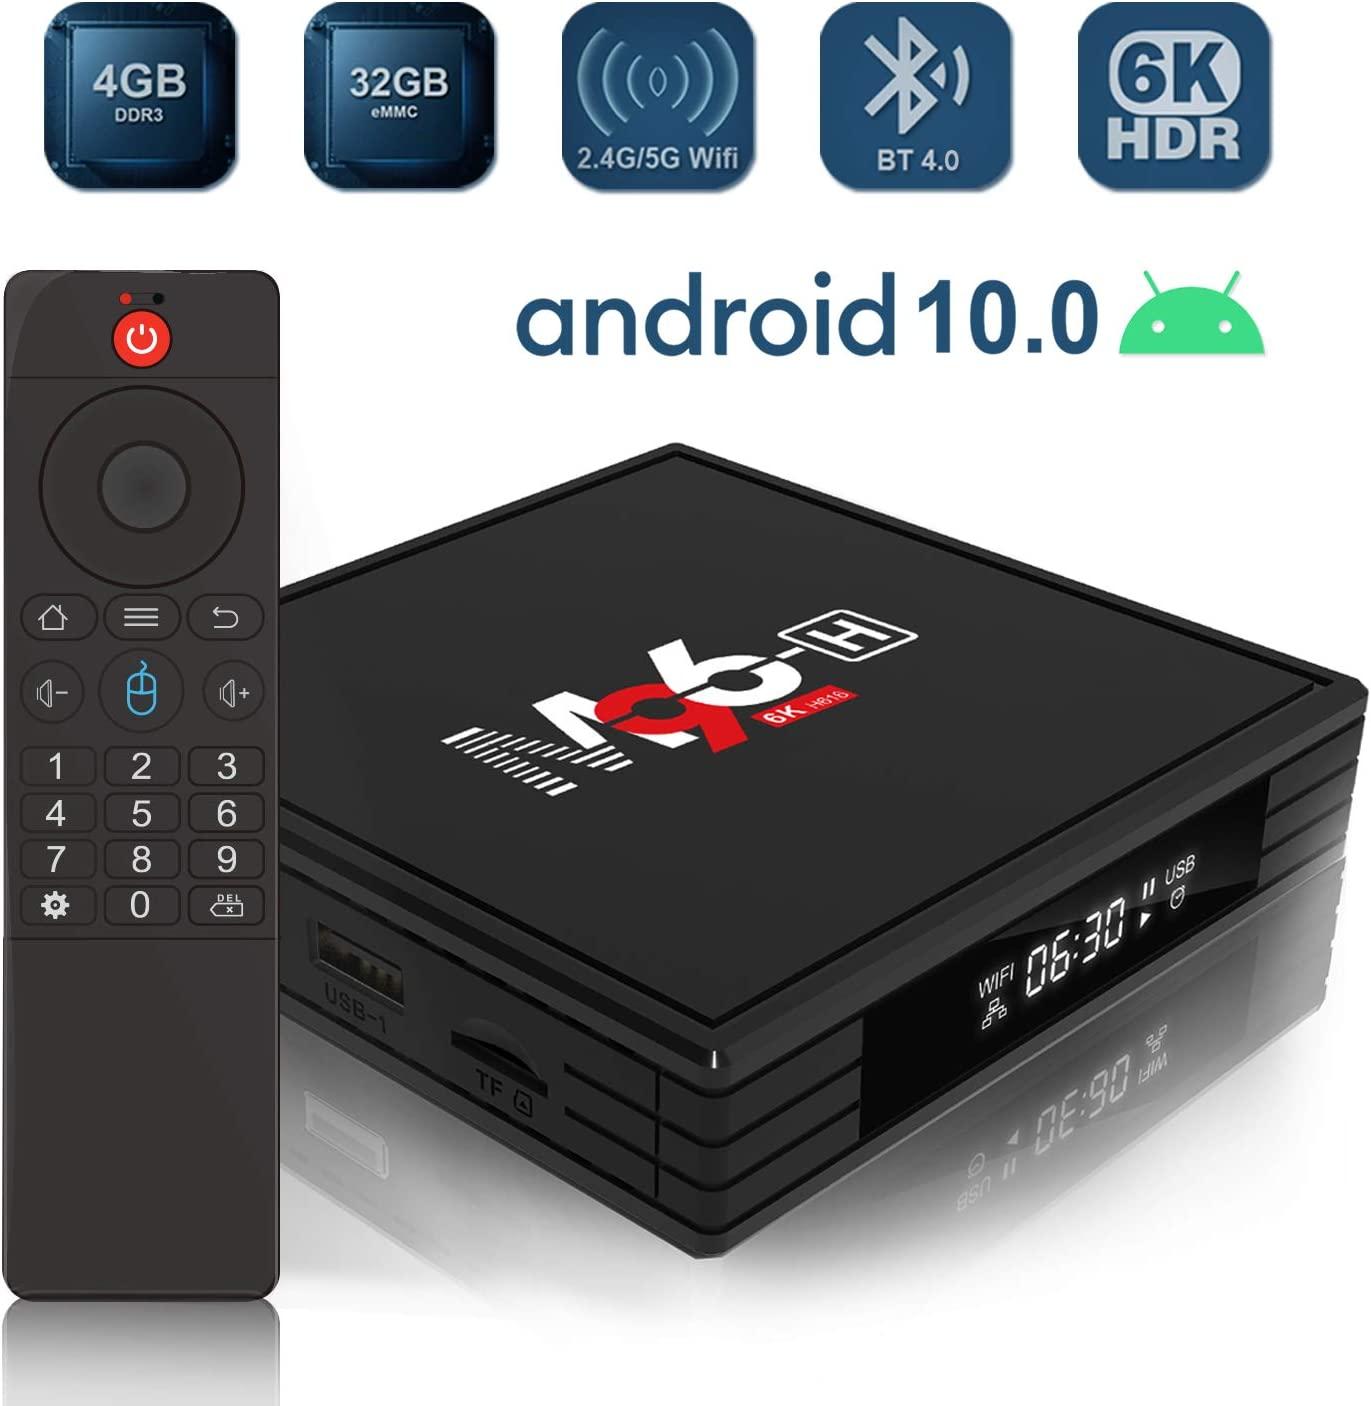 HUIBEST 2020 Newest Android 10.0 TV Box, M96-H Android TV Box 4GB RAM 32GB ROM with Allwinner H616 Quad-core 64bit, Support 2.4G/5G WiFi/BT4.0/6K UHD/3D/USB/H.265/HDMI/AV-Out/Standard RJ45